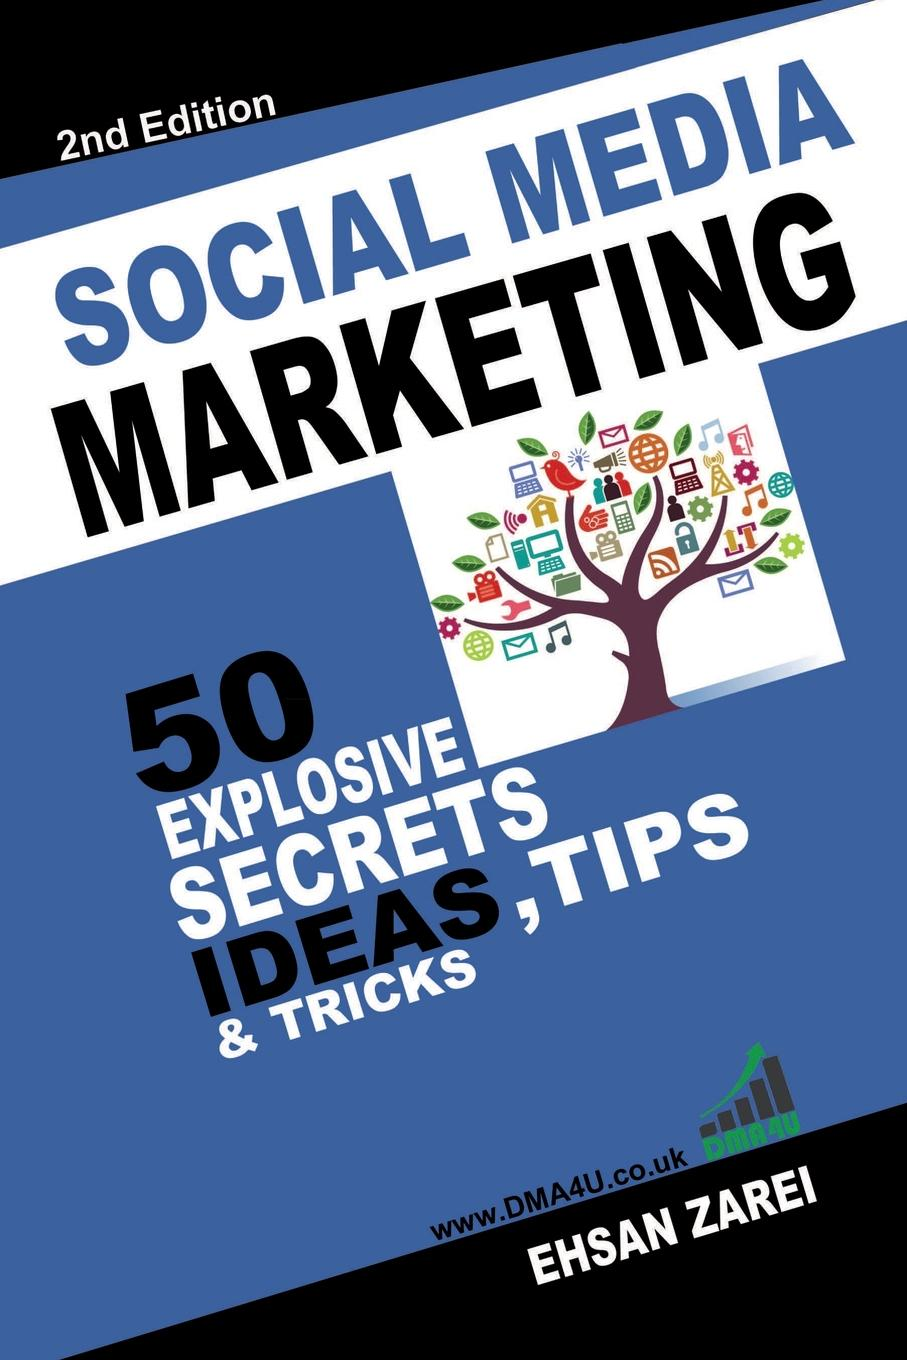 Social Media Marketing Did You Waste A Lot Of Time& Money On Nonsense Marketing Р?...